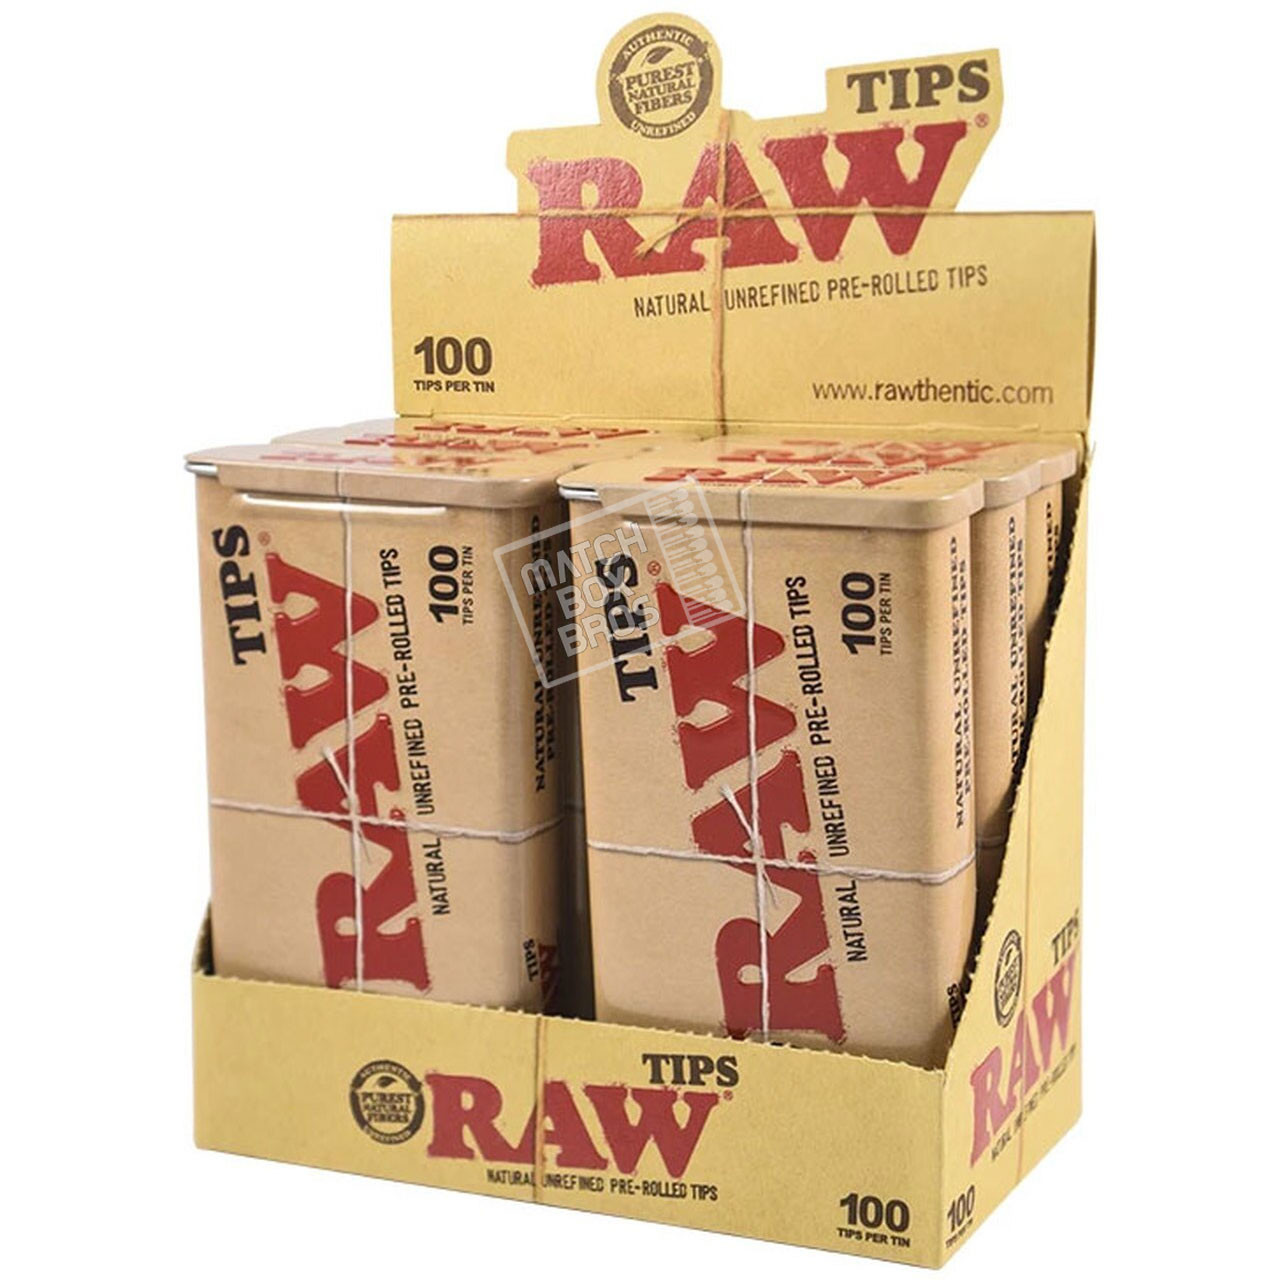 RAW Pre-Rolled Tips 100ct Tin Full Box